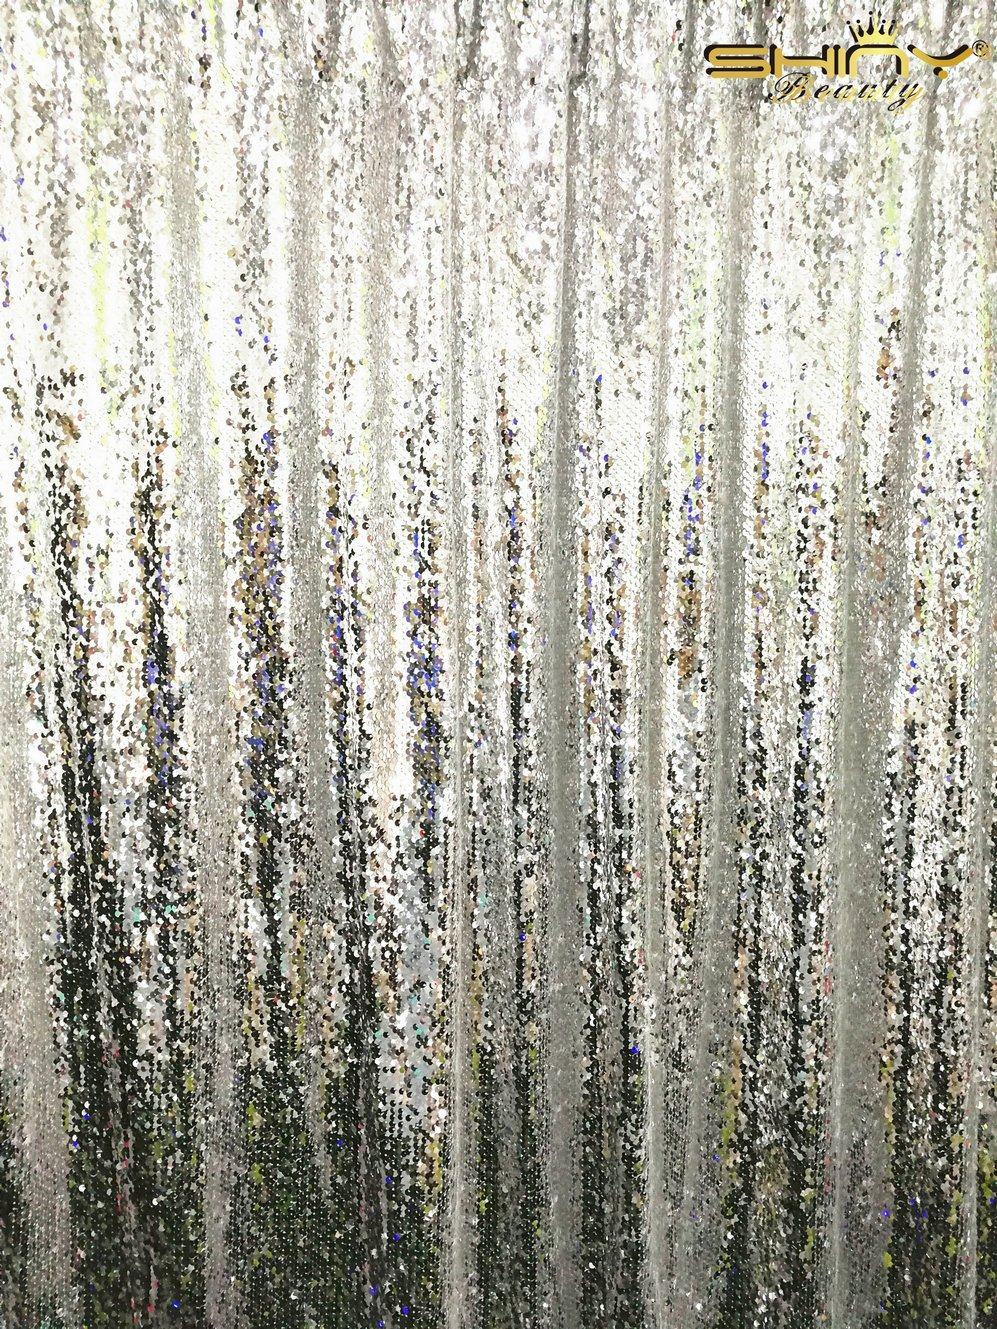 ShinyBeauty Mermaid-Sequin Curtain Backdrop-Silver-9FTX9FT,Sparkyly Sequin Fabric Curtain Backdrop,Perfect for Party/Wedding/Event/Prom/Birthday by ShinyBeauty